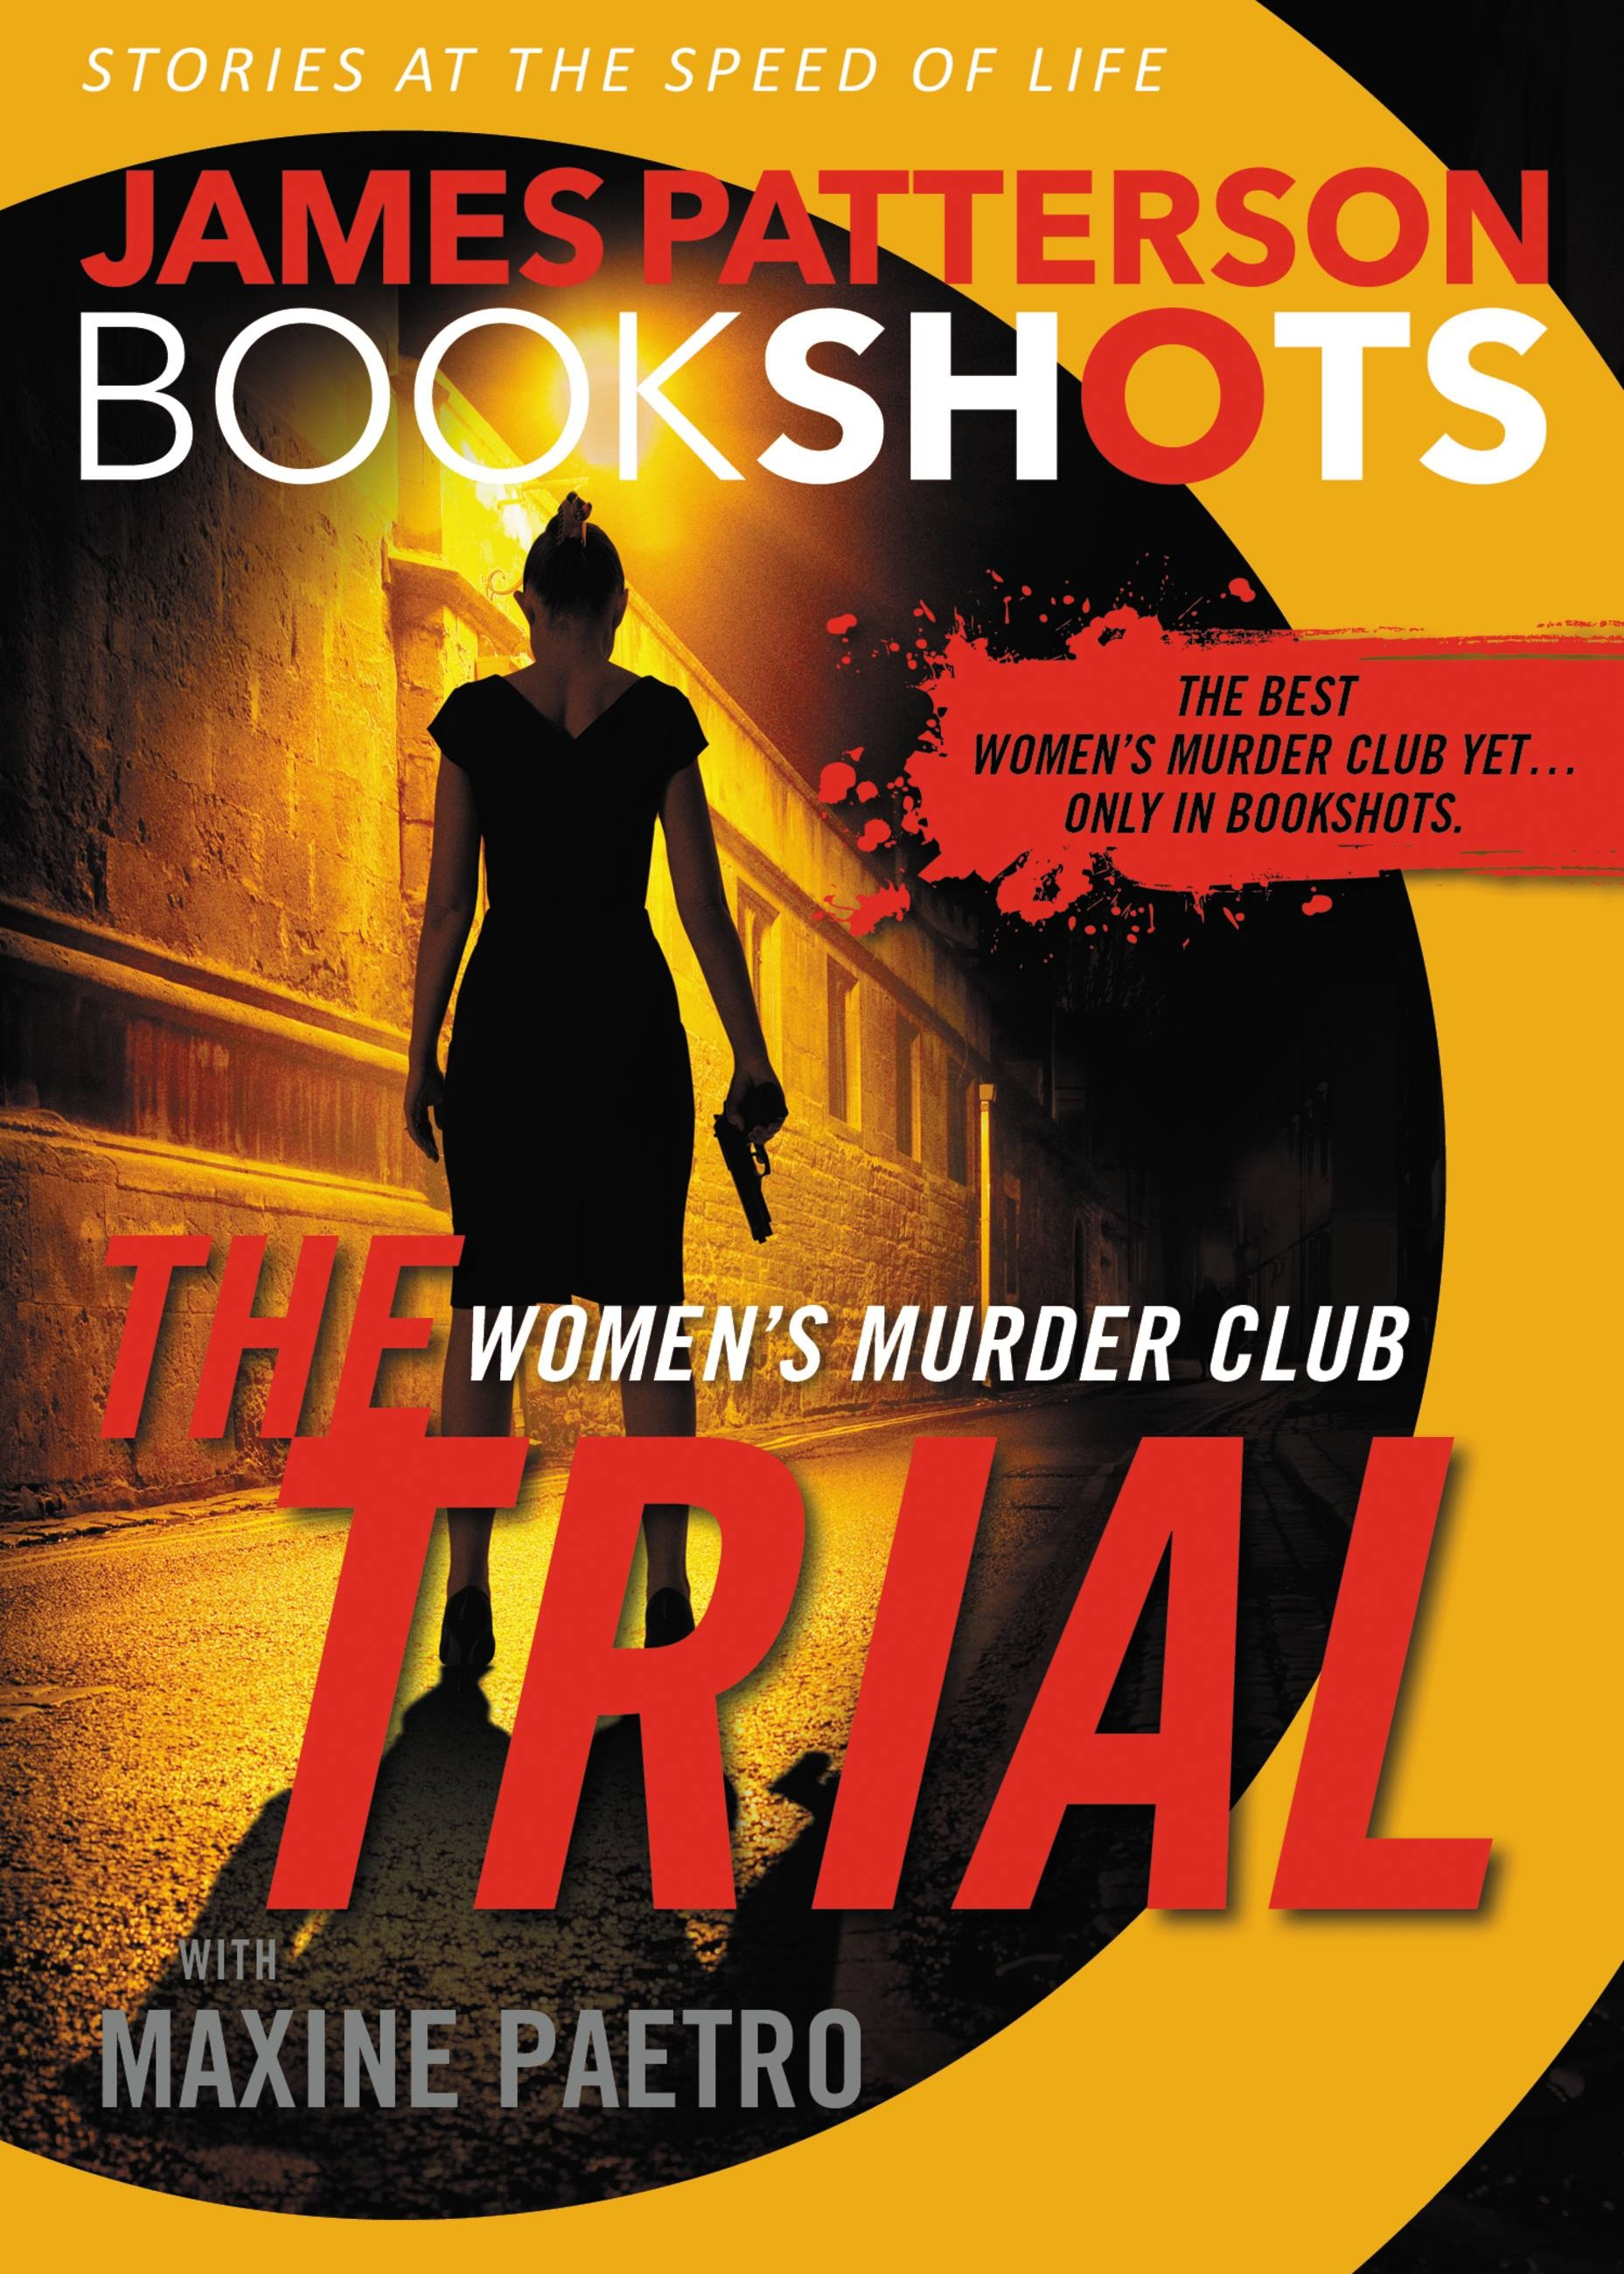 The Trial: A BookShot by James Patterson | Hachette Book Group